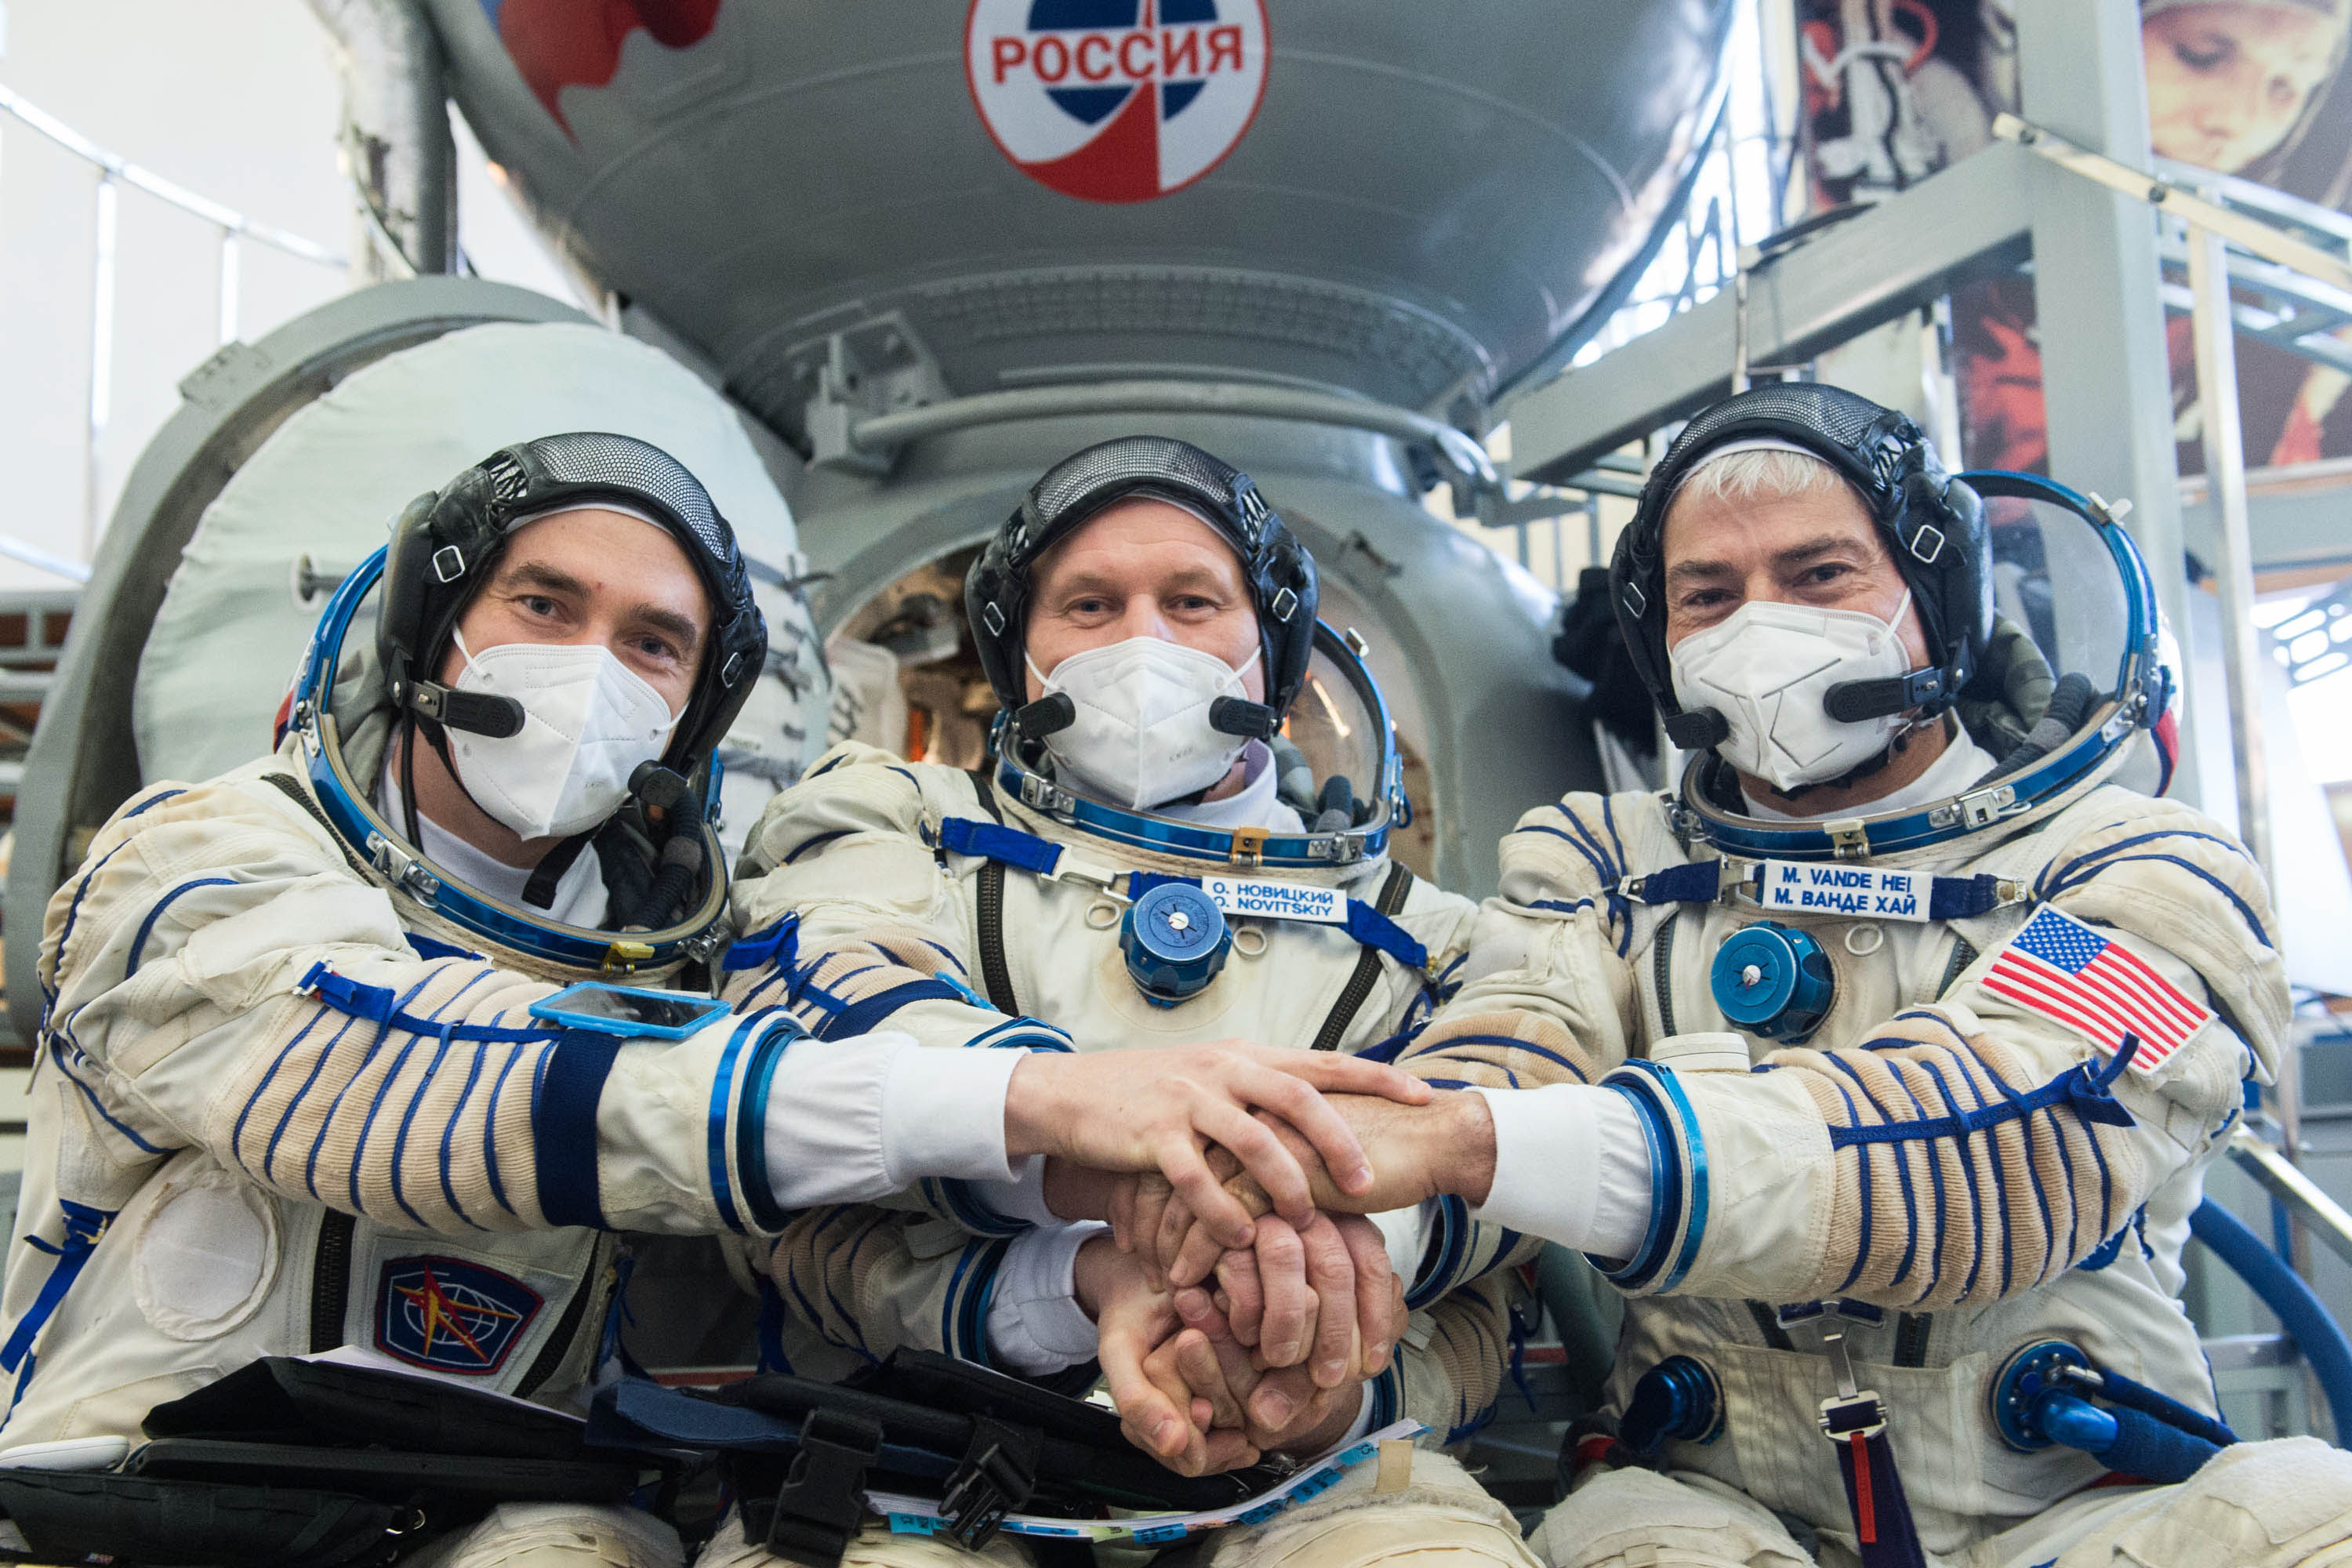 Russian cosmonauts, NASA astronaut successfully launch to the space station